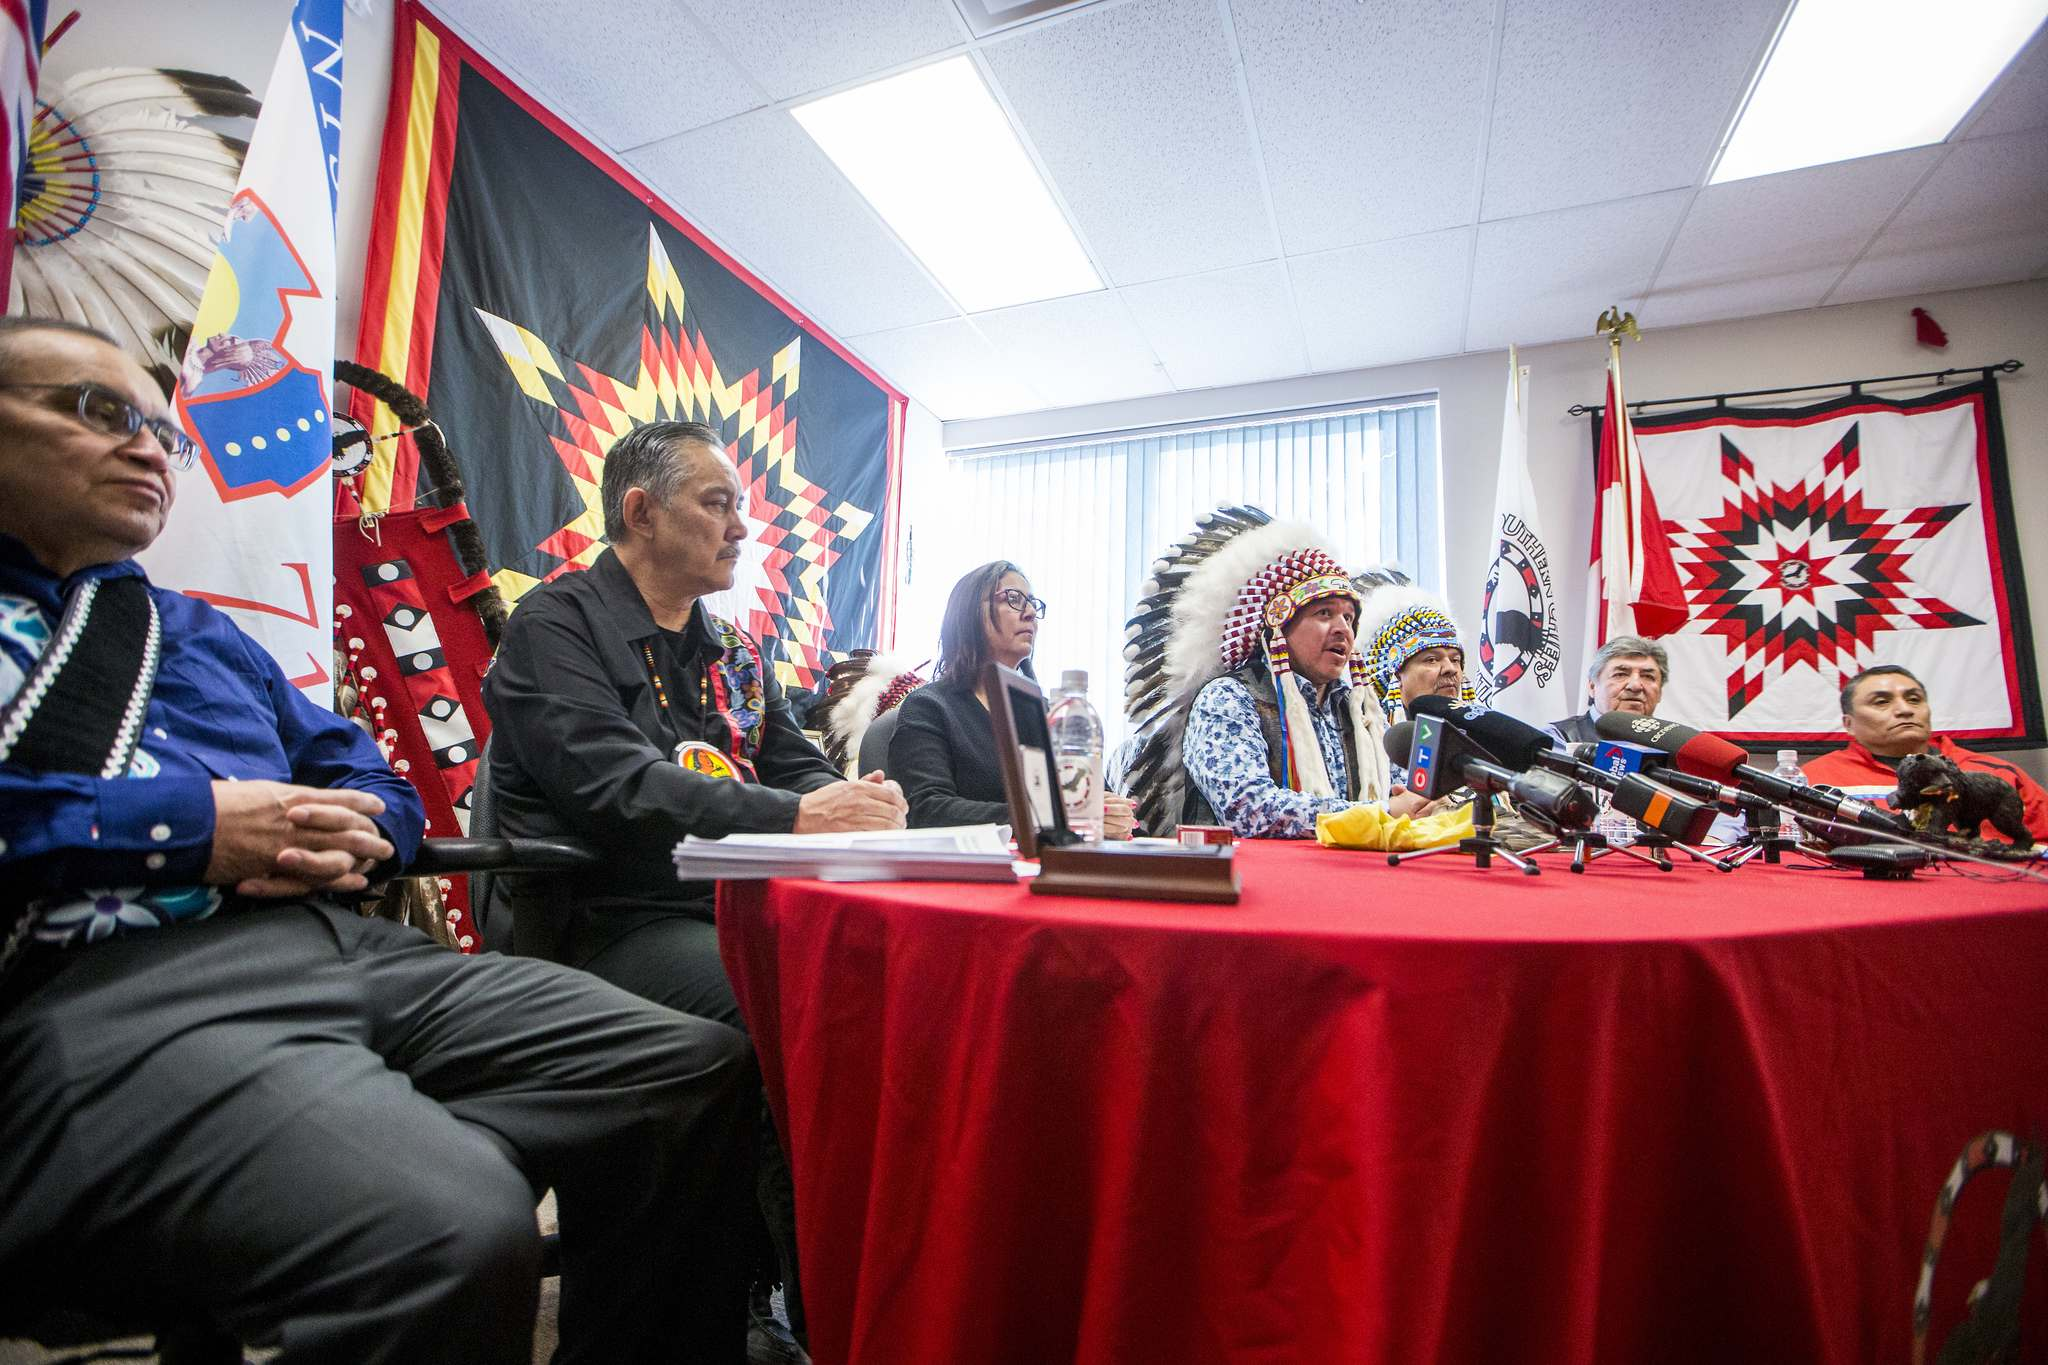 Roseau River First Nation council member Terry Nelson (from left), Sagkeeng First Nation Chief Derrick Henderson, Pine Creek First Nation Chief Karen Batson, Grand Chief Jerry Daniels, Lake Manitoba First Nation Chief Cornell McLean, Keeseekoowenin First Nation Chief Norman Bone, and spiritual advisor to the SCO Grand Chief Kevin Bunn speak to media about the Wet'suwet'en blockades on Friday. (Mikaela MacKenzie / Winnipeg Free Press)</p>